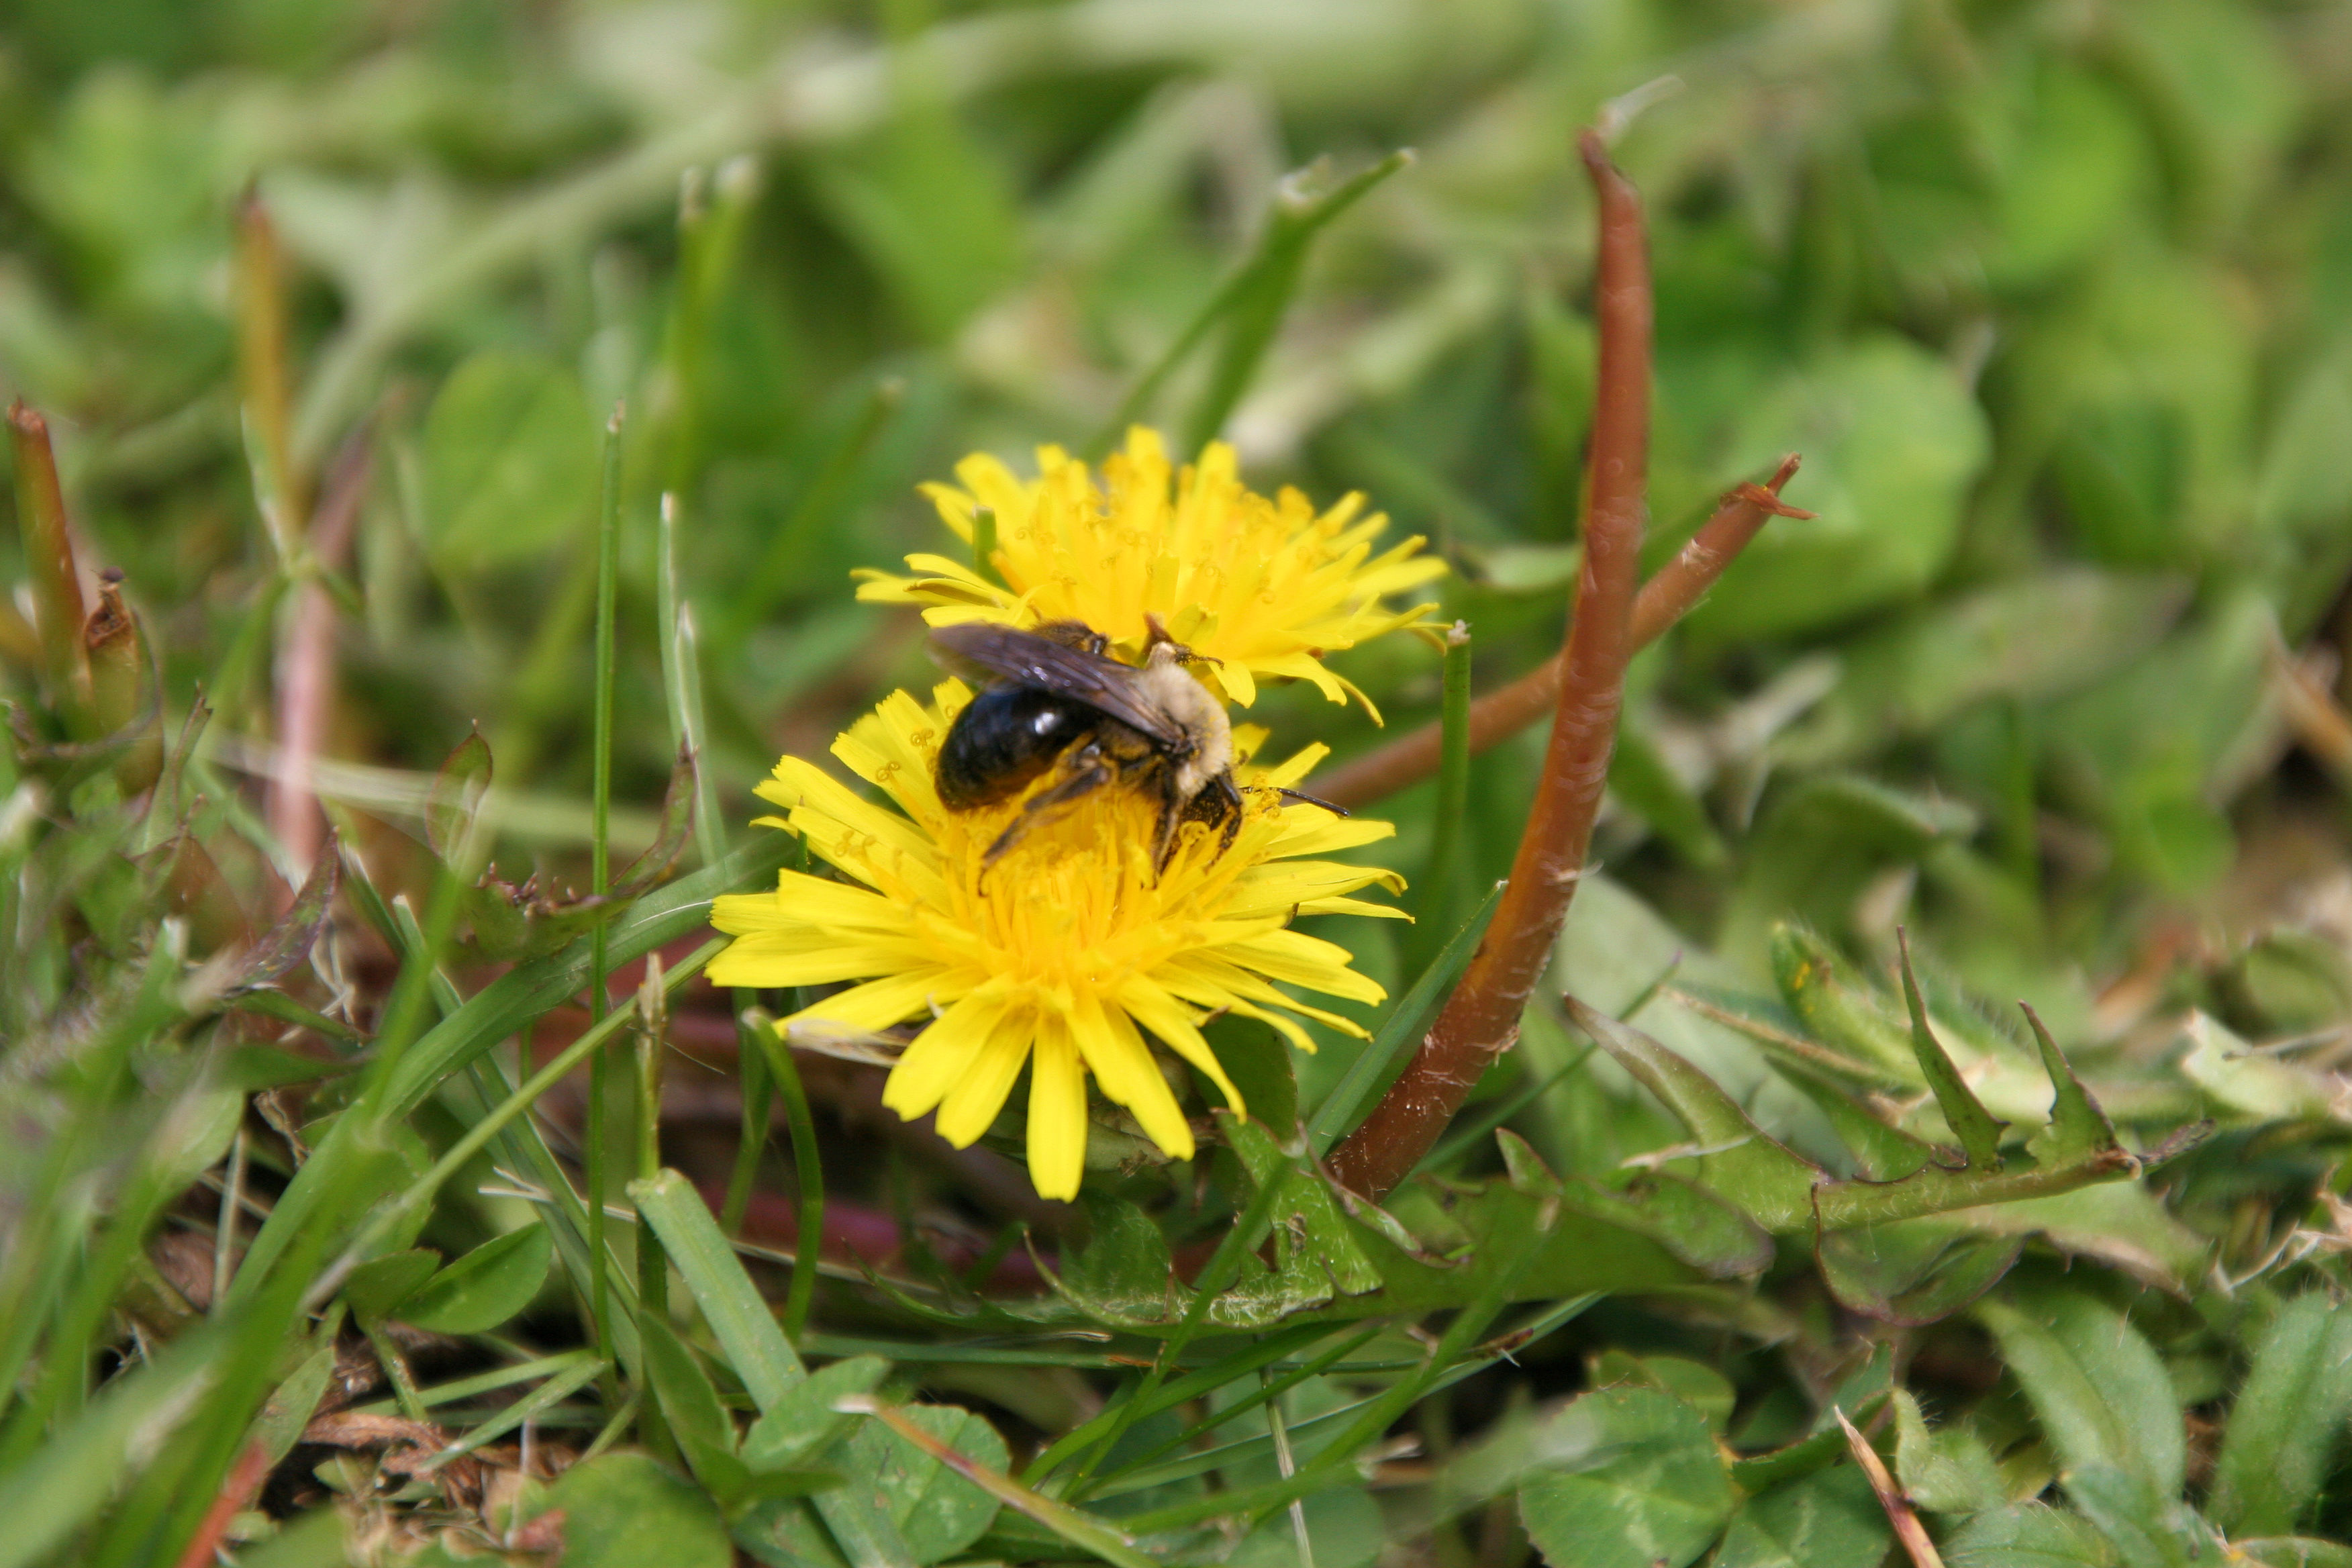 A Flowering Lawn: Bees and Dandelions